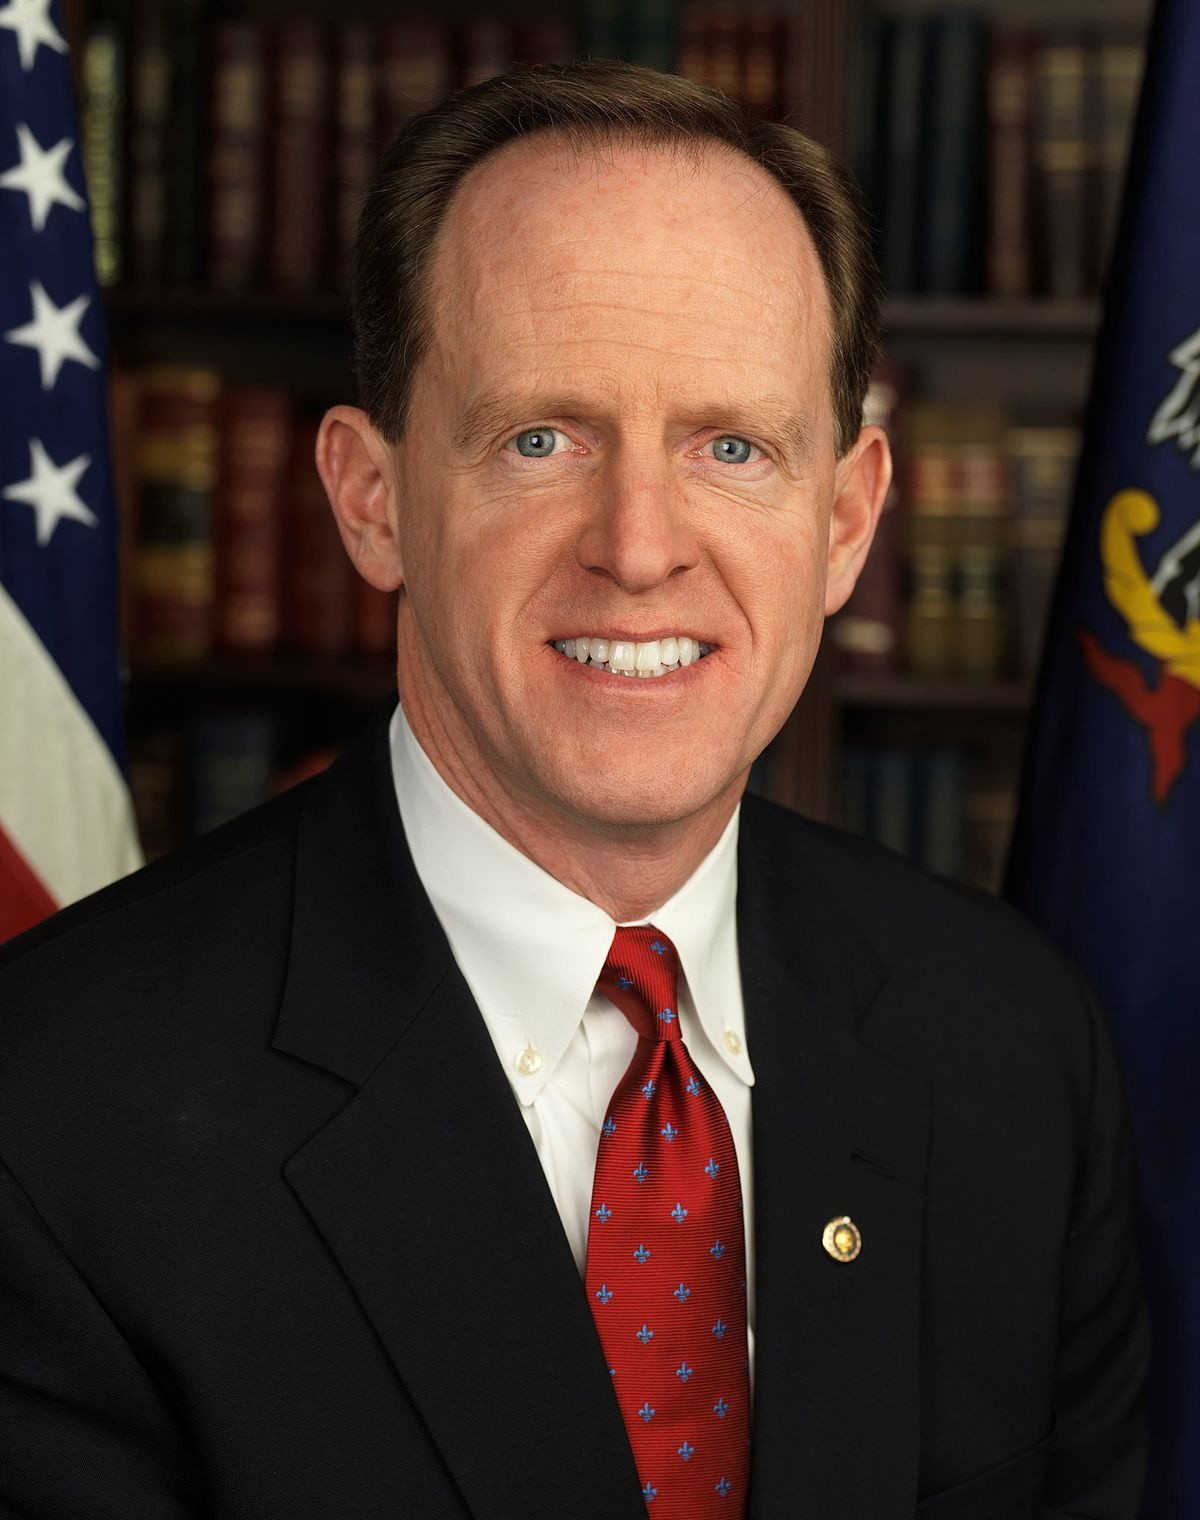 Who Are The Two Us Senators From Rhode Island